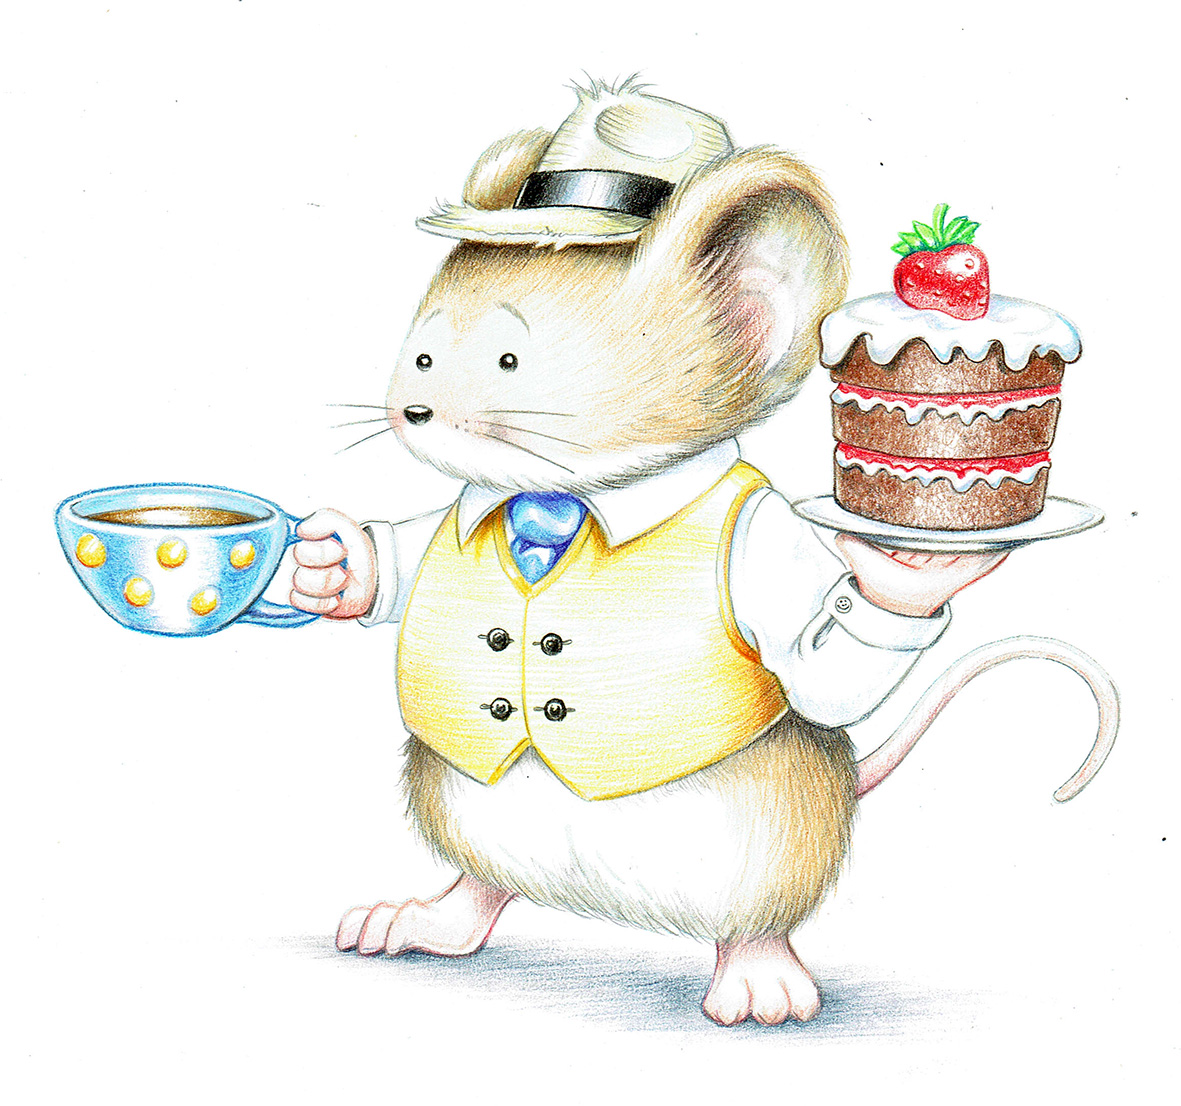 Mr. Mouse Illustration by Dave Smith